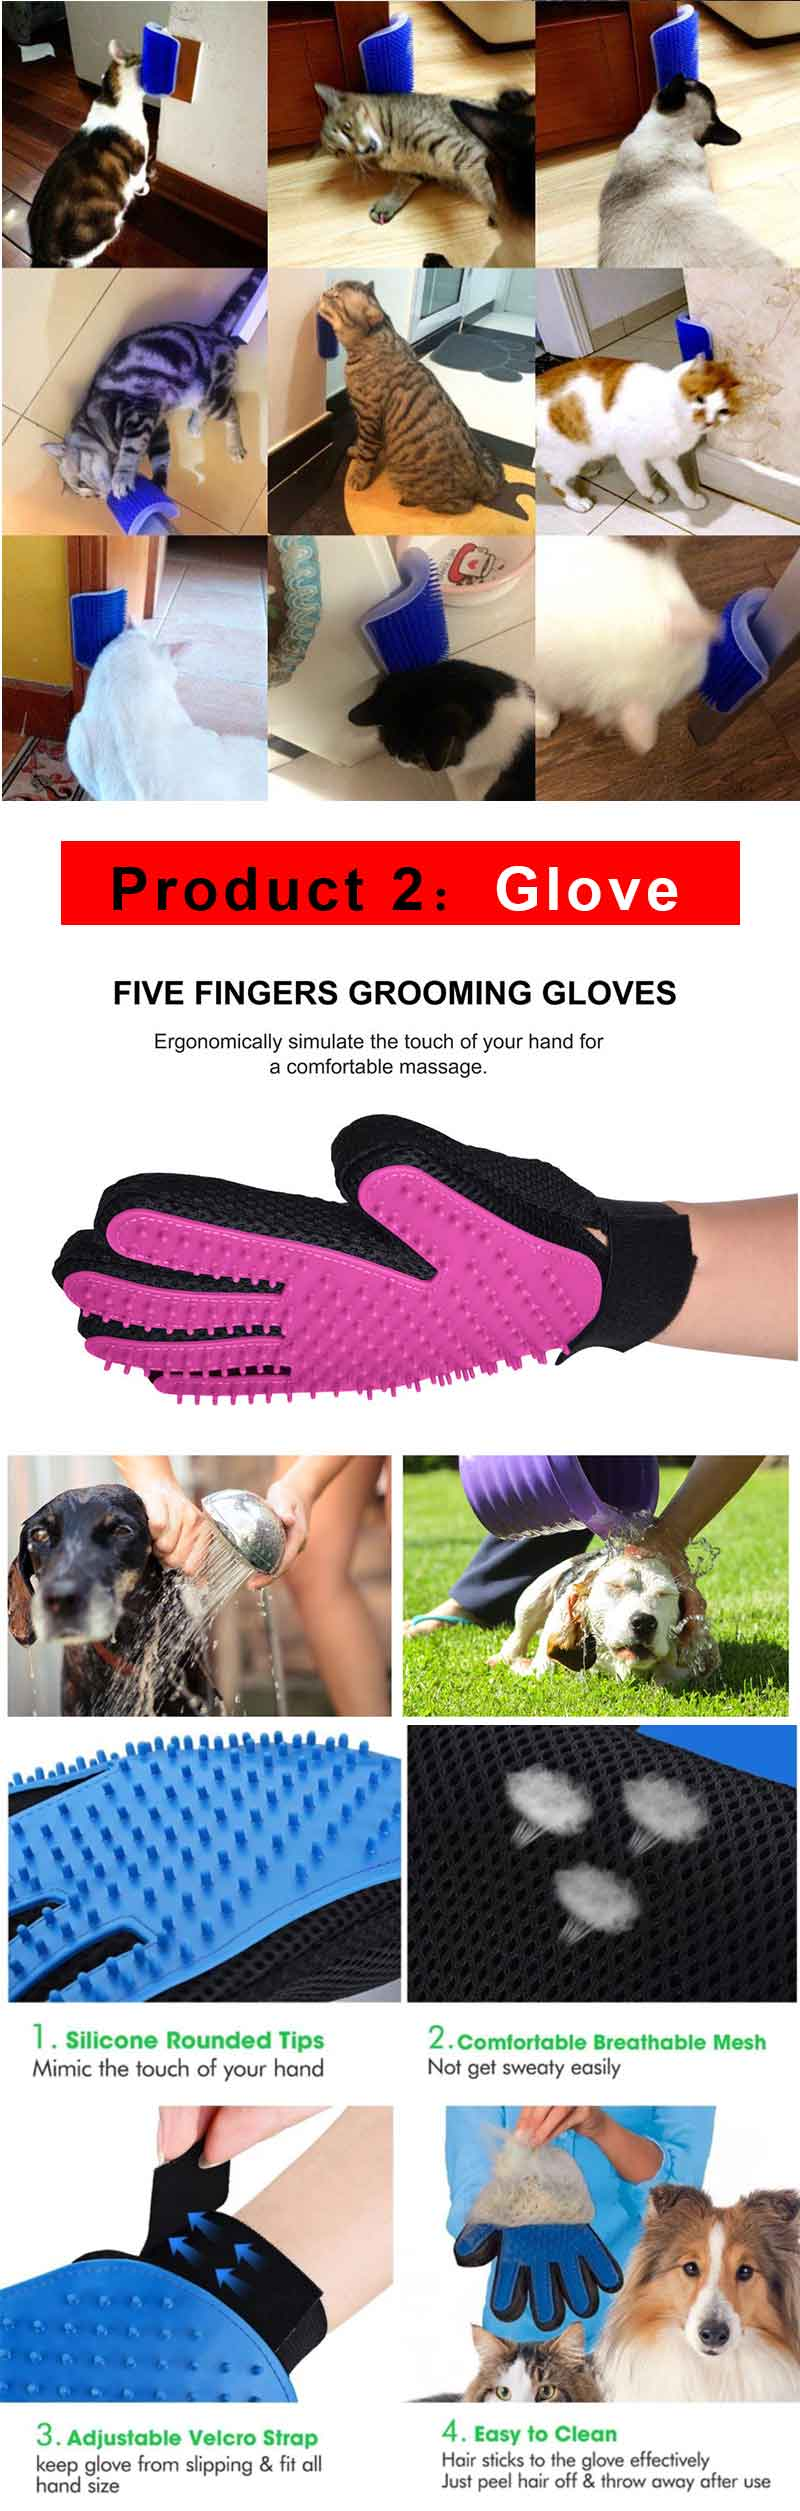 HTB1bHxHE25TBuNjSspcq6znGFXau Cat Self Grooming Hair Accessorie With Catnip Angle Face Tickling Dog Hair Removal Massage Brush Comb And Pet Dog Cat Grooming Glove